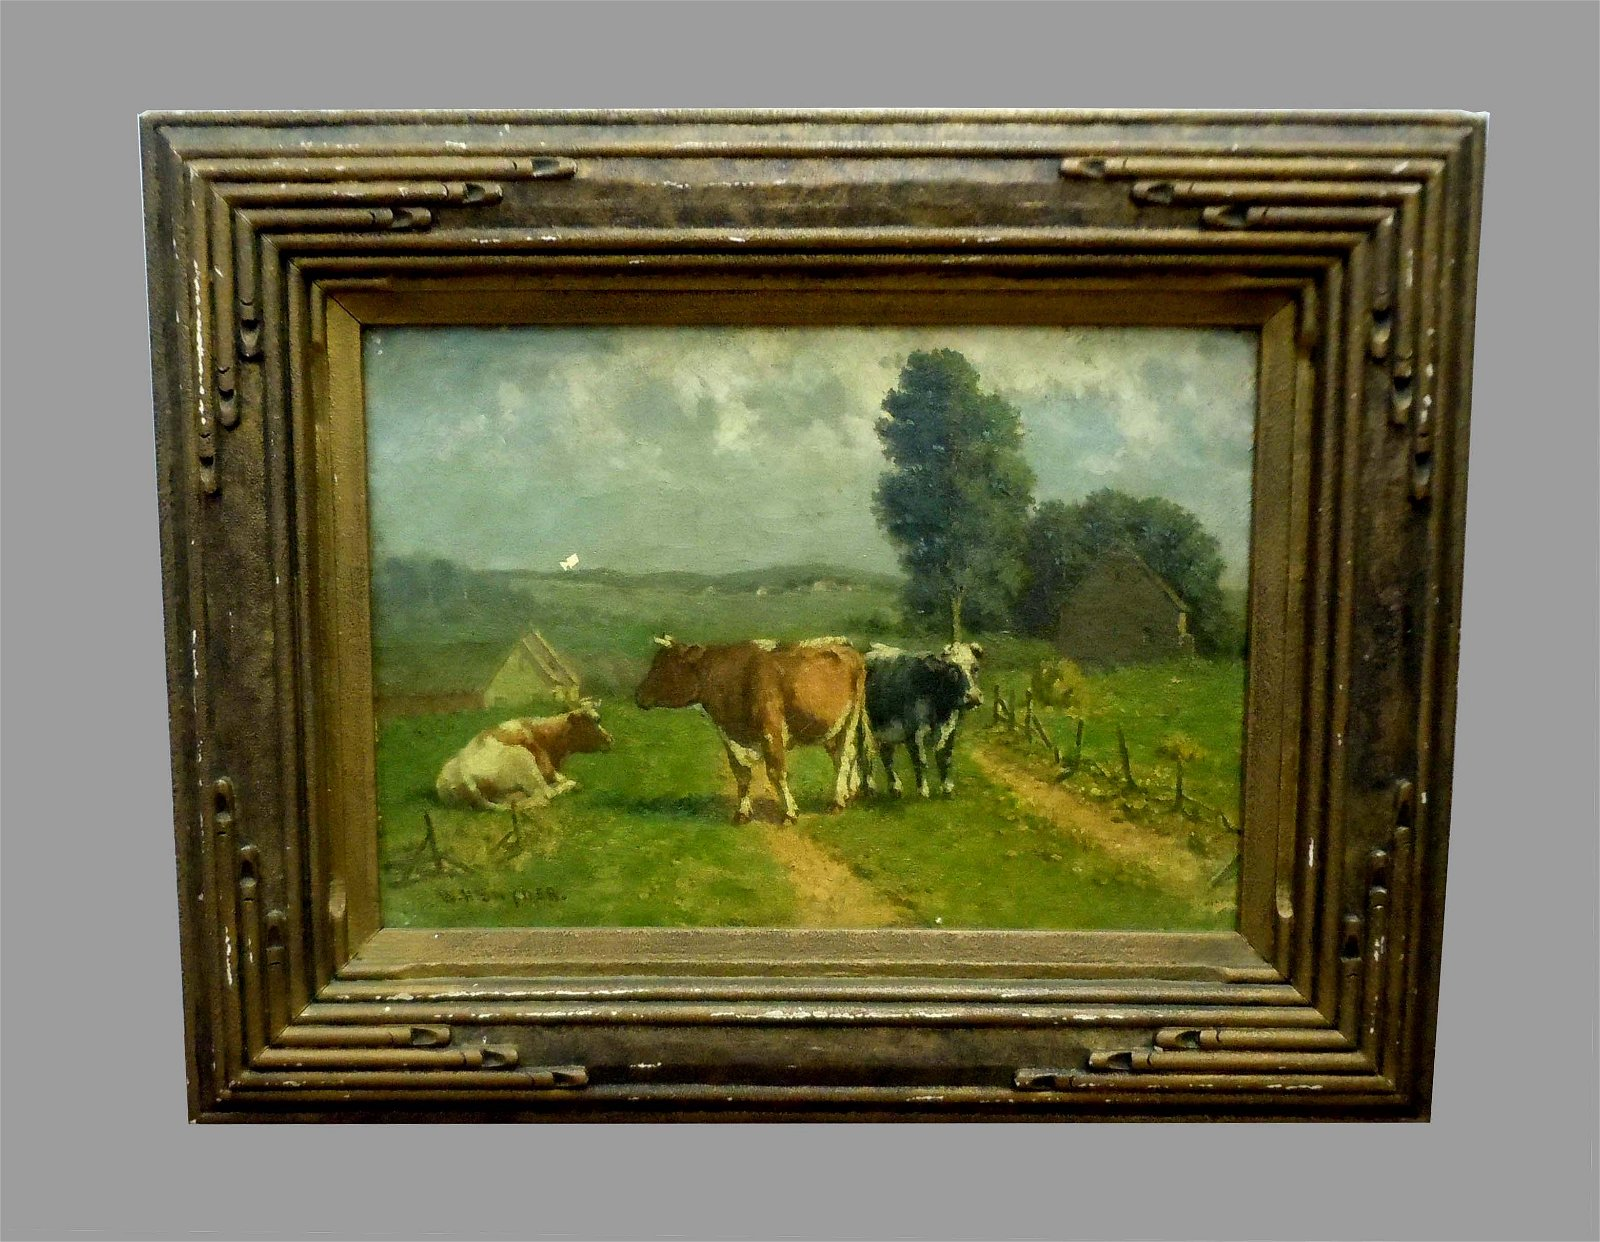 WILLIAM HENRY SNYDER COWS IN PASTURE OIL PAINTING C1880